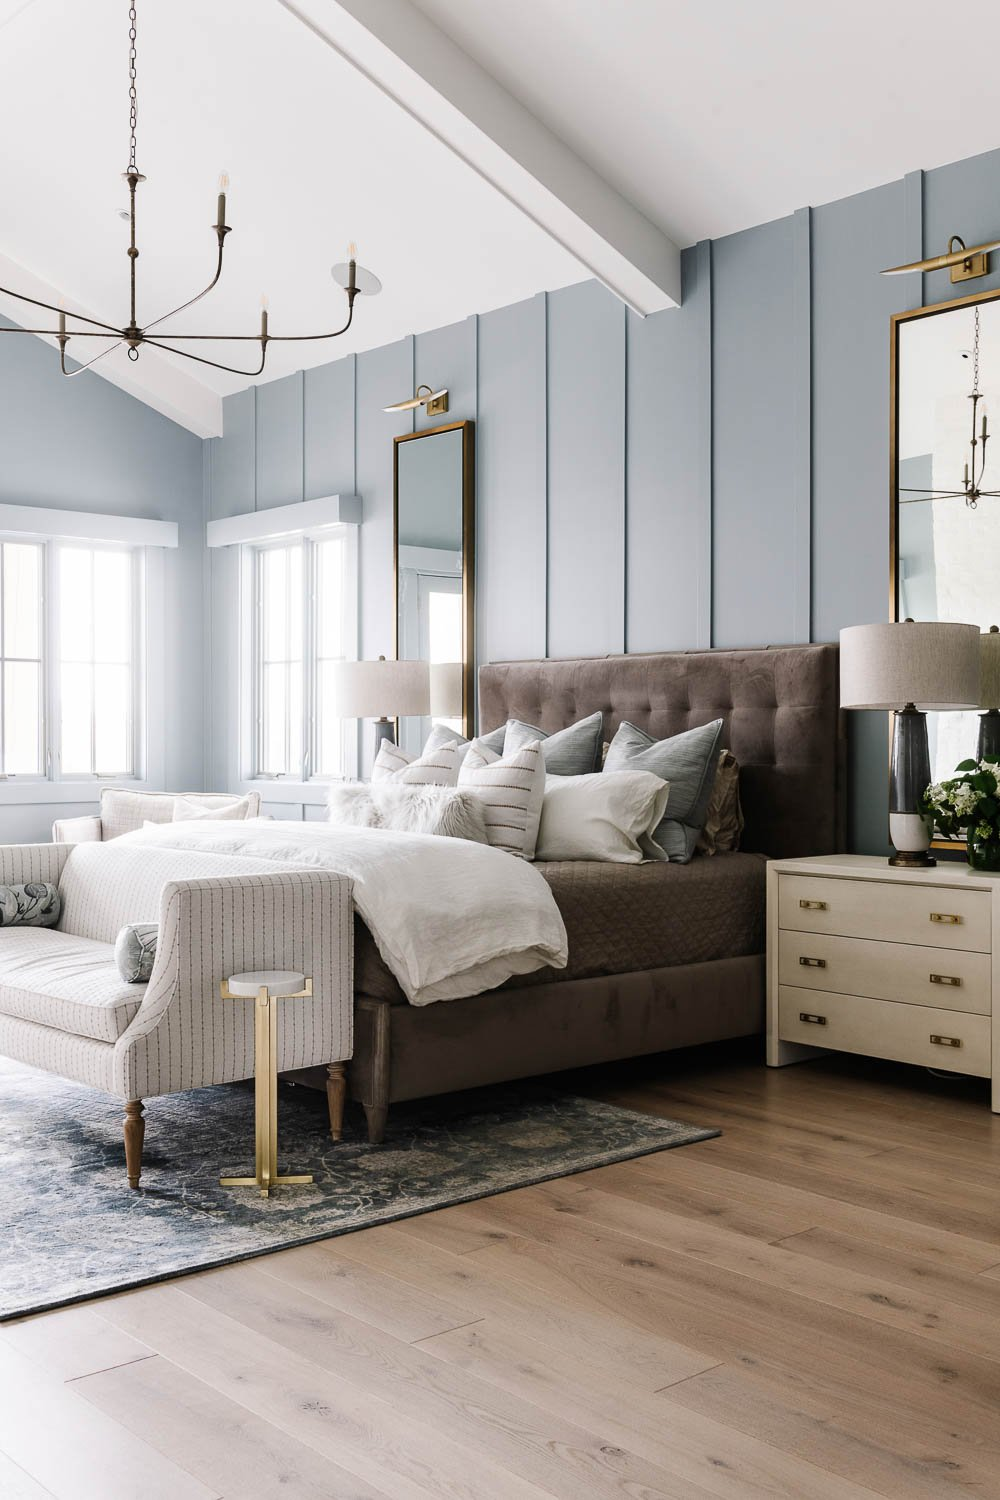 Primary bedroom with soft blue painted walls